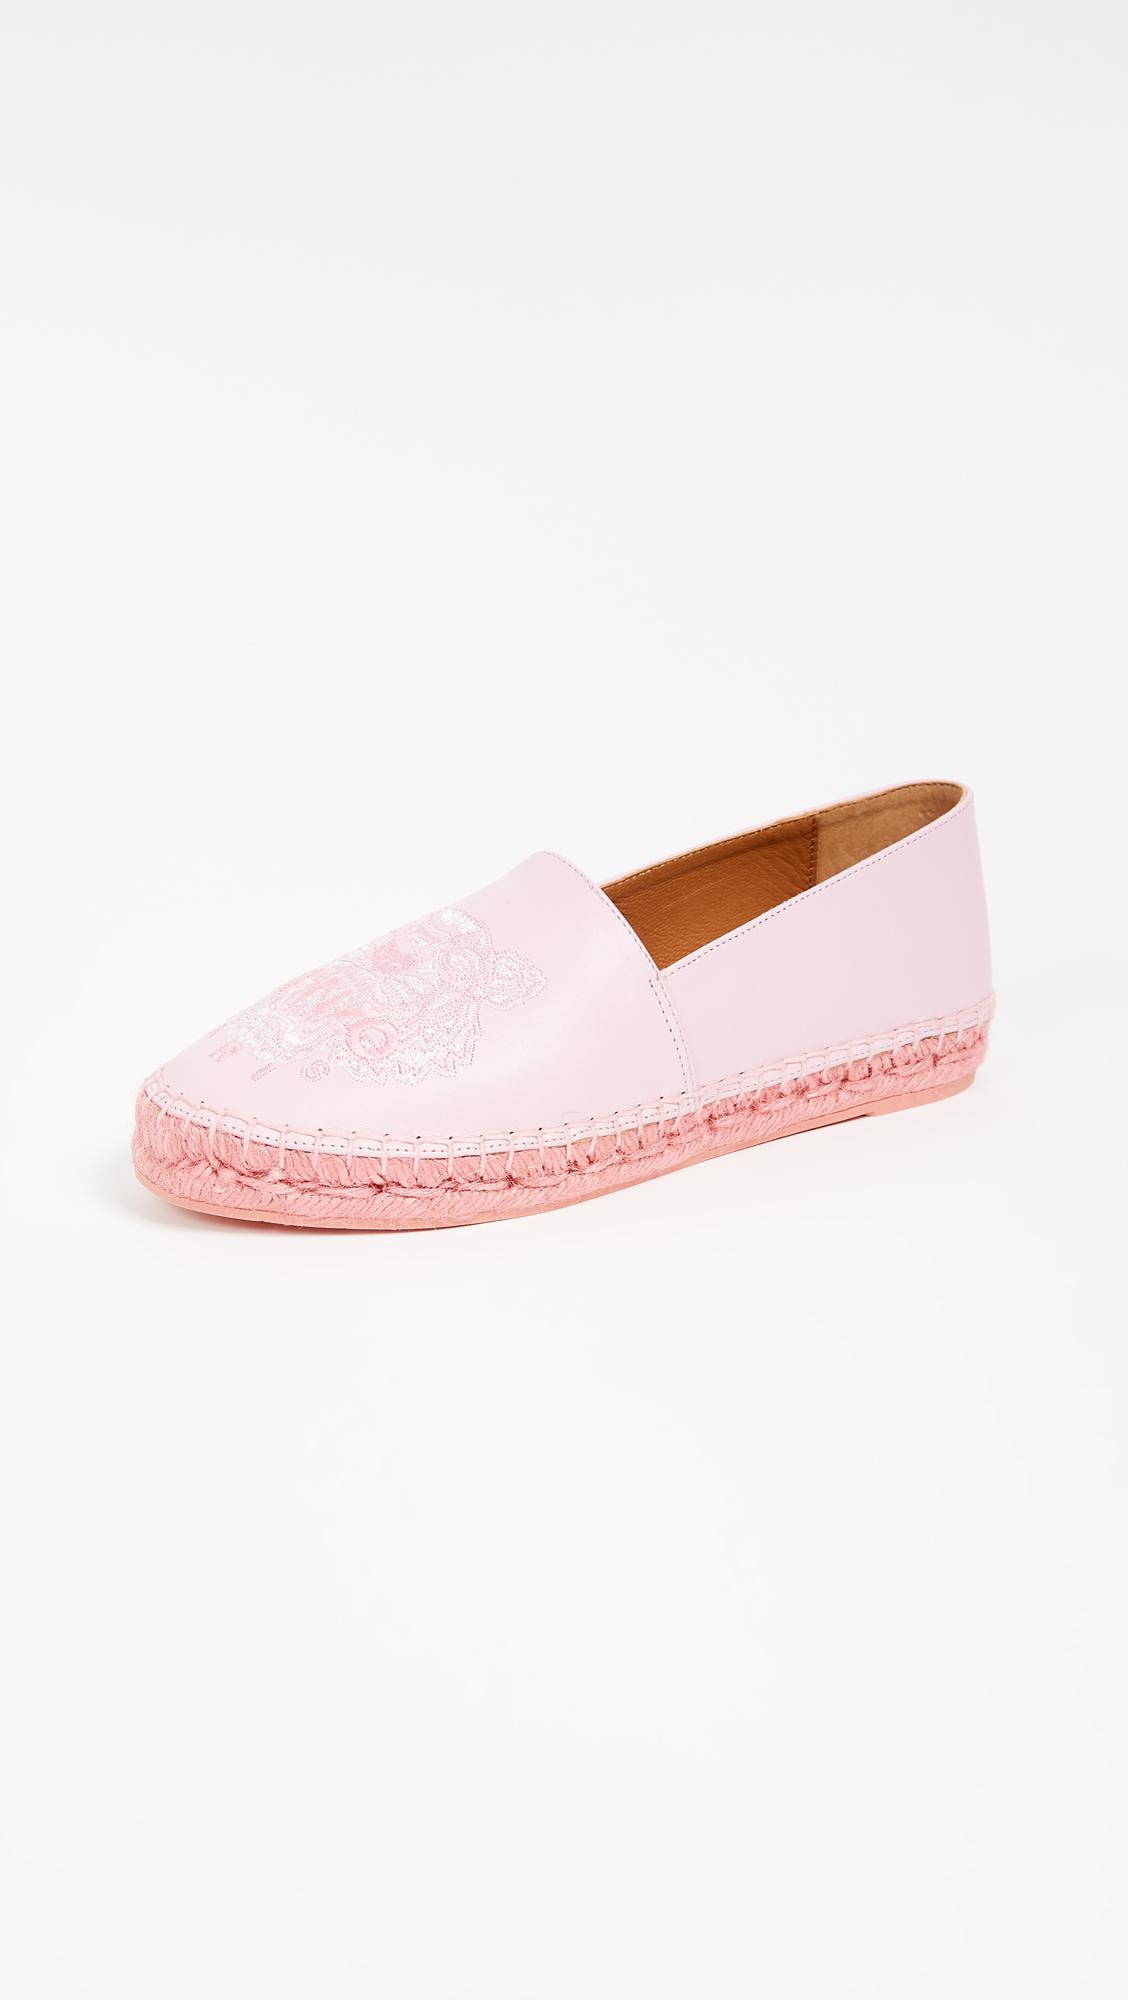 Kenzo Tiger Classic Espadrilles How Much For Sale Latest Cheap Online Clearance Fashion Style Buy Cheap Collections c2ue1qi